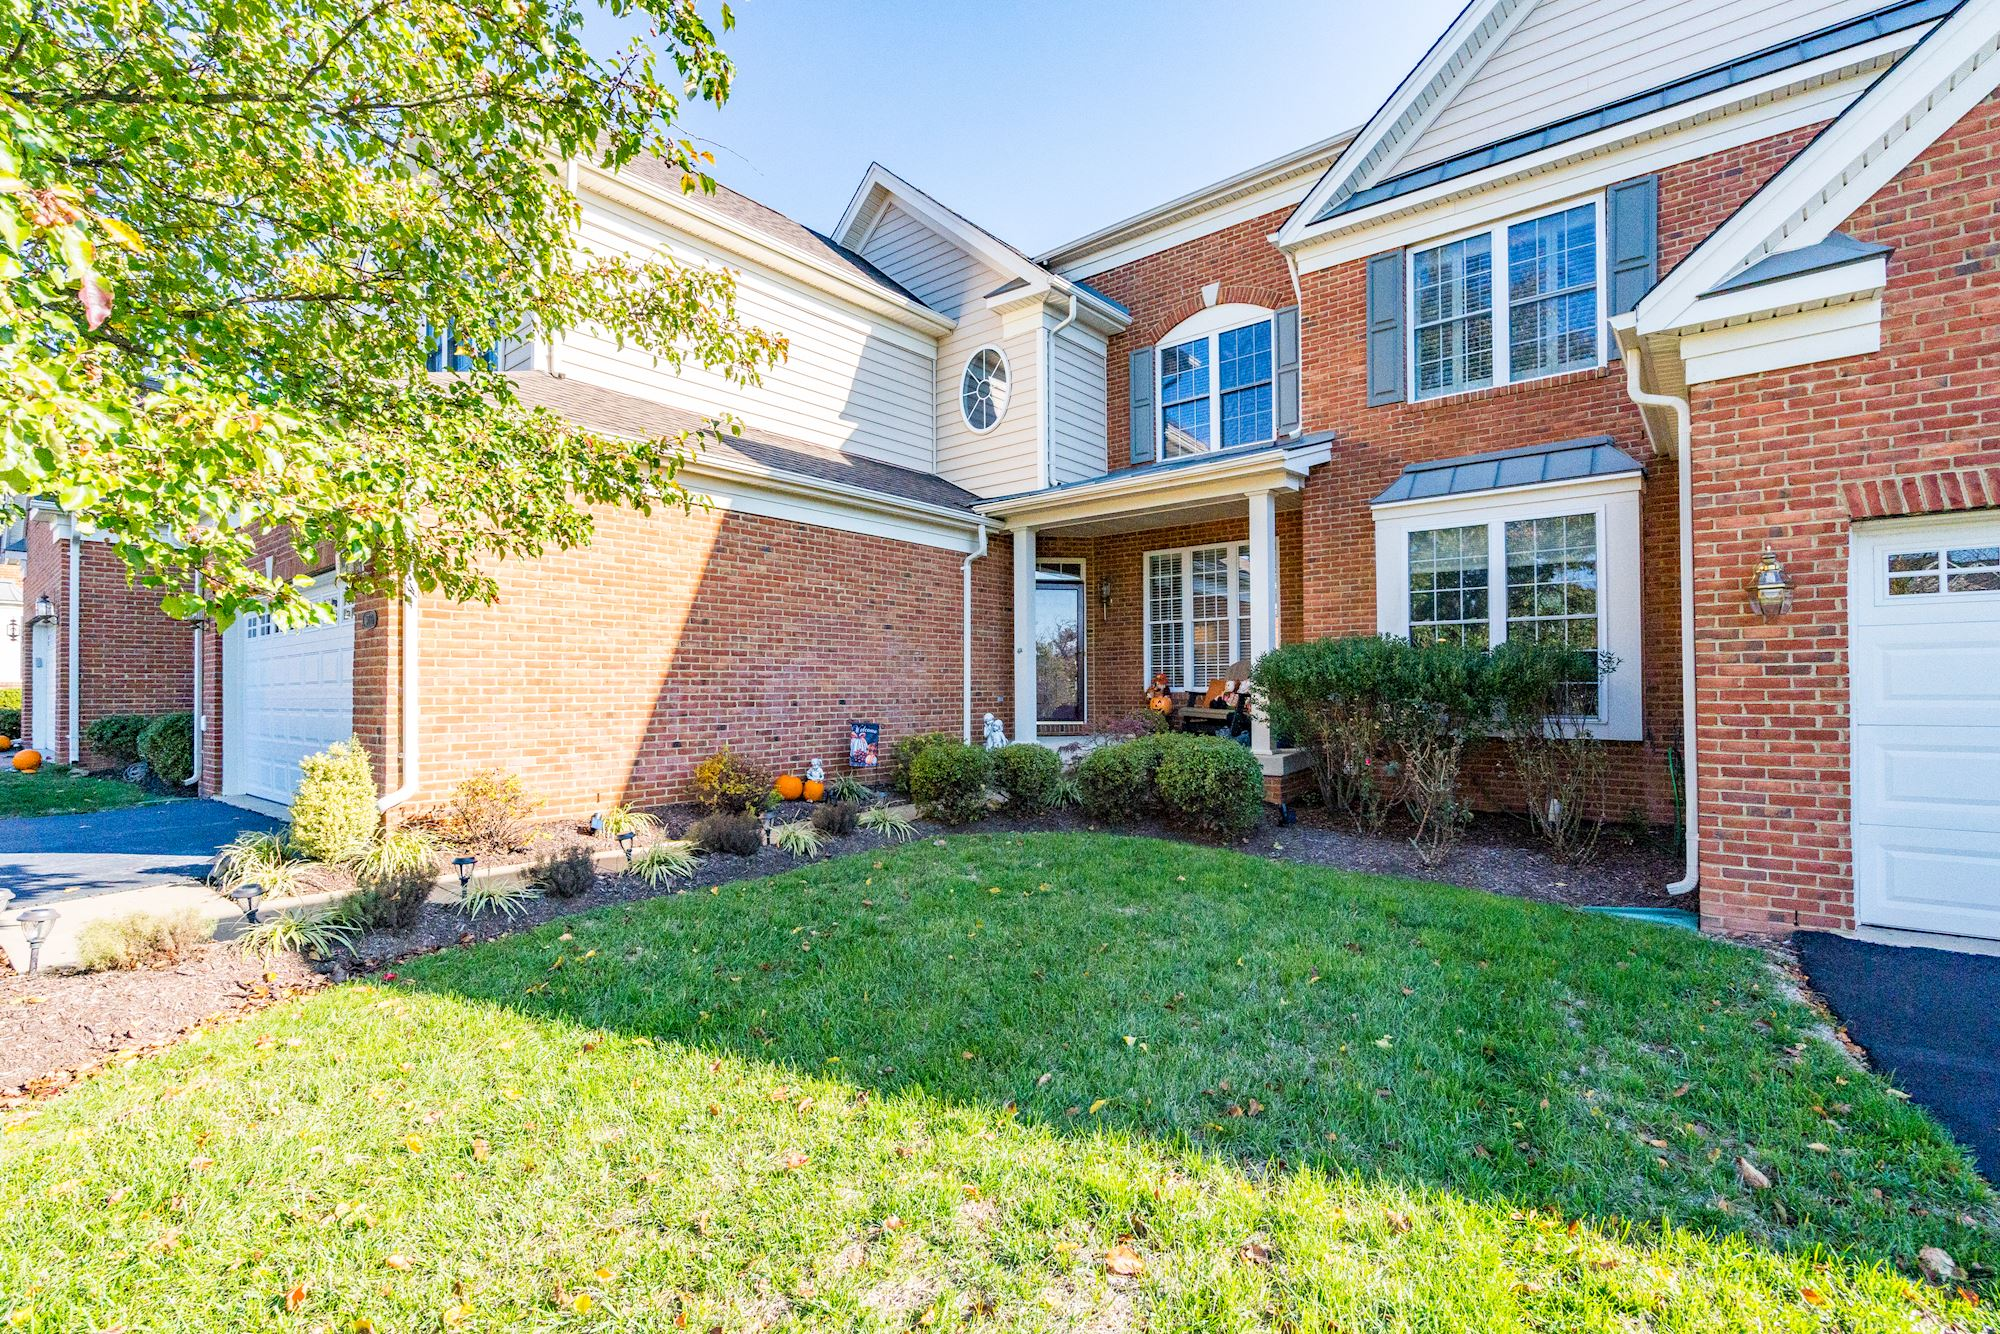 UNDER CONTRACT: 3 BD Luxury Townhome in Dominion Valley, VA